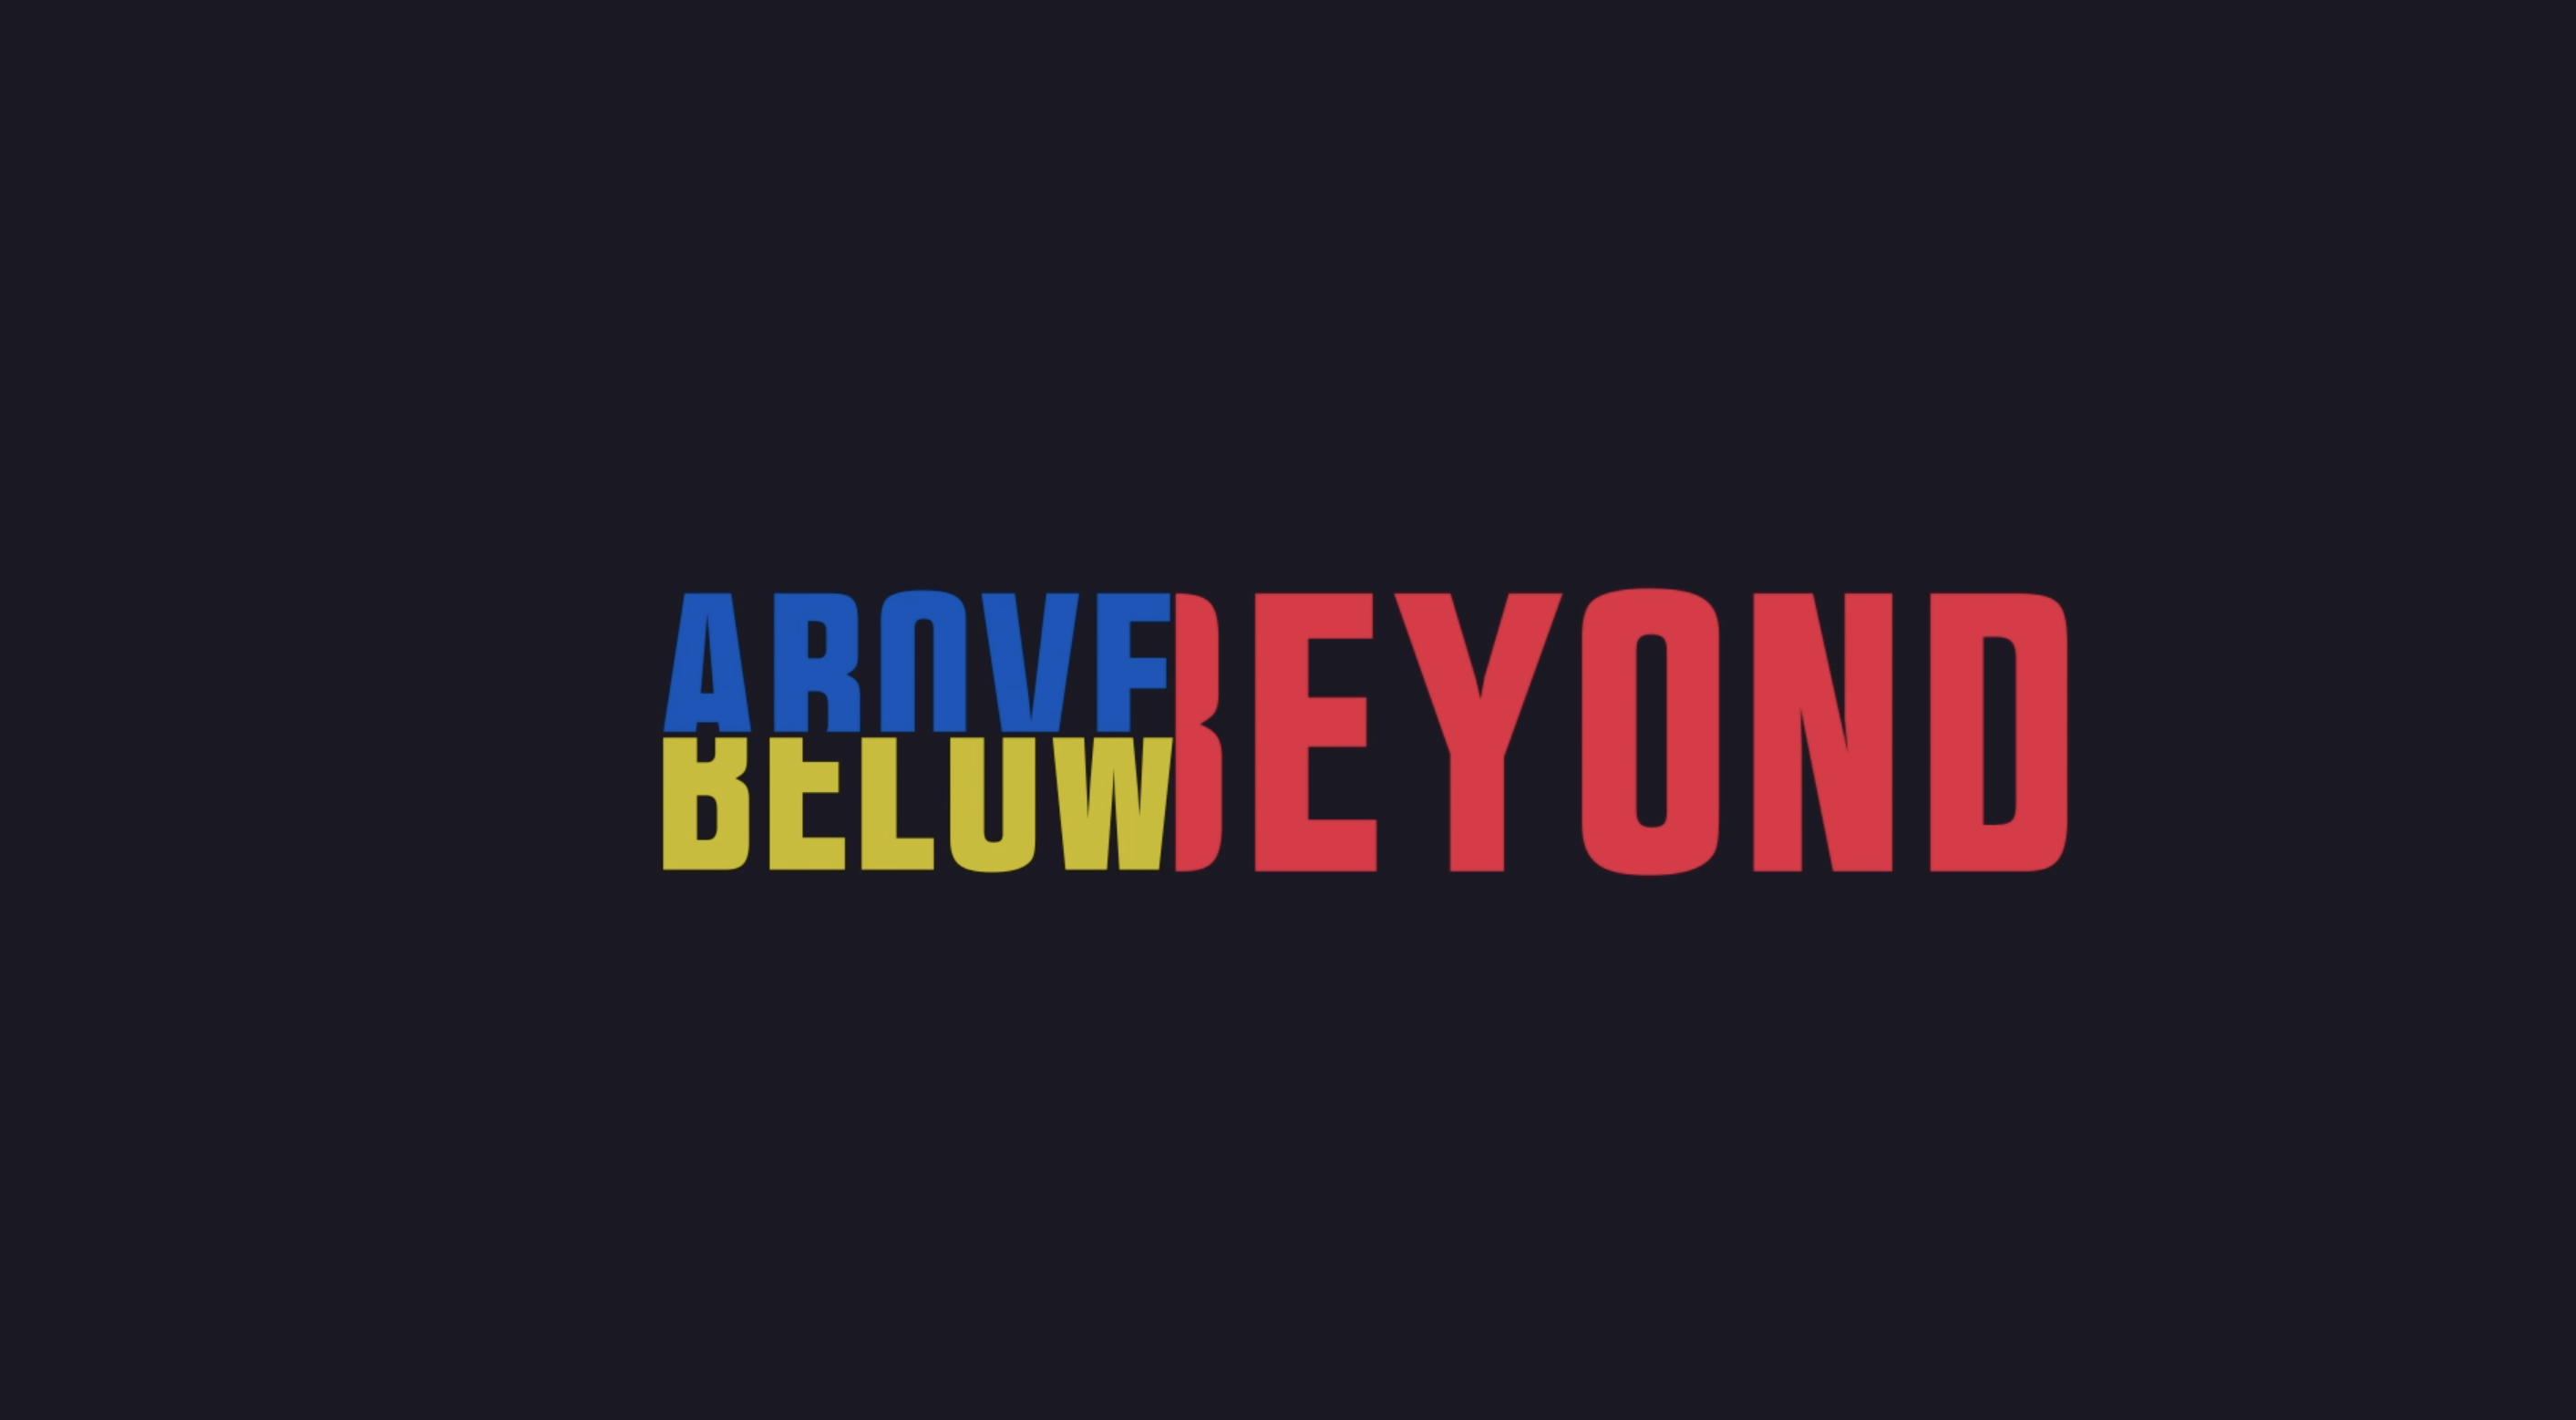 Above Below Beyond